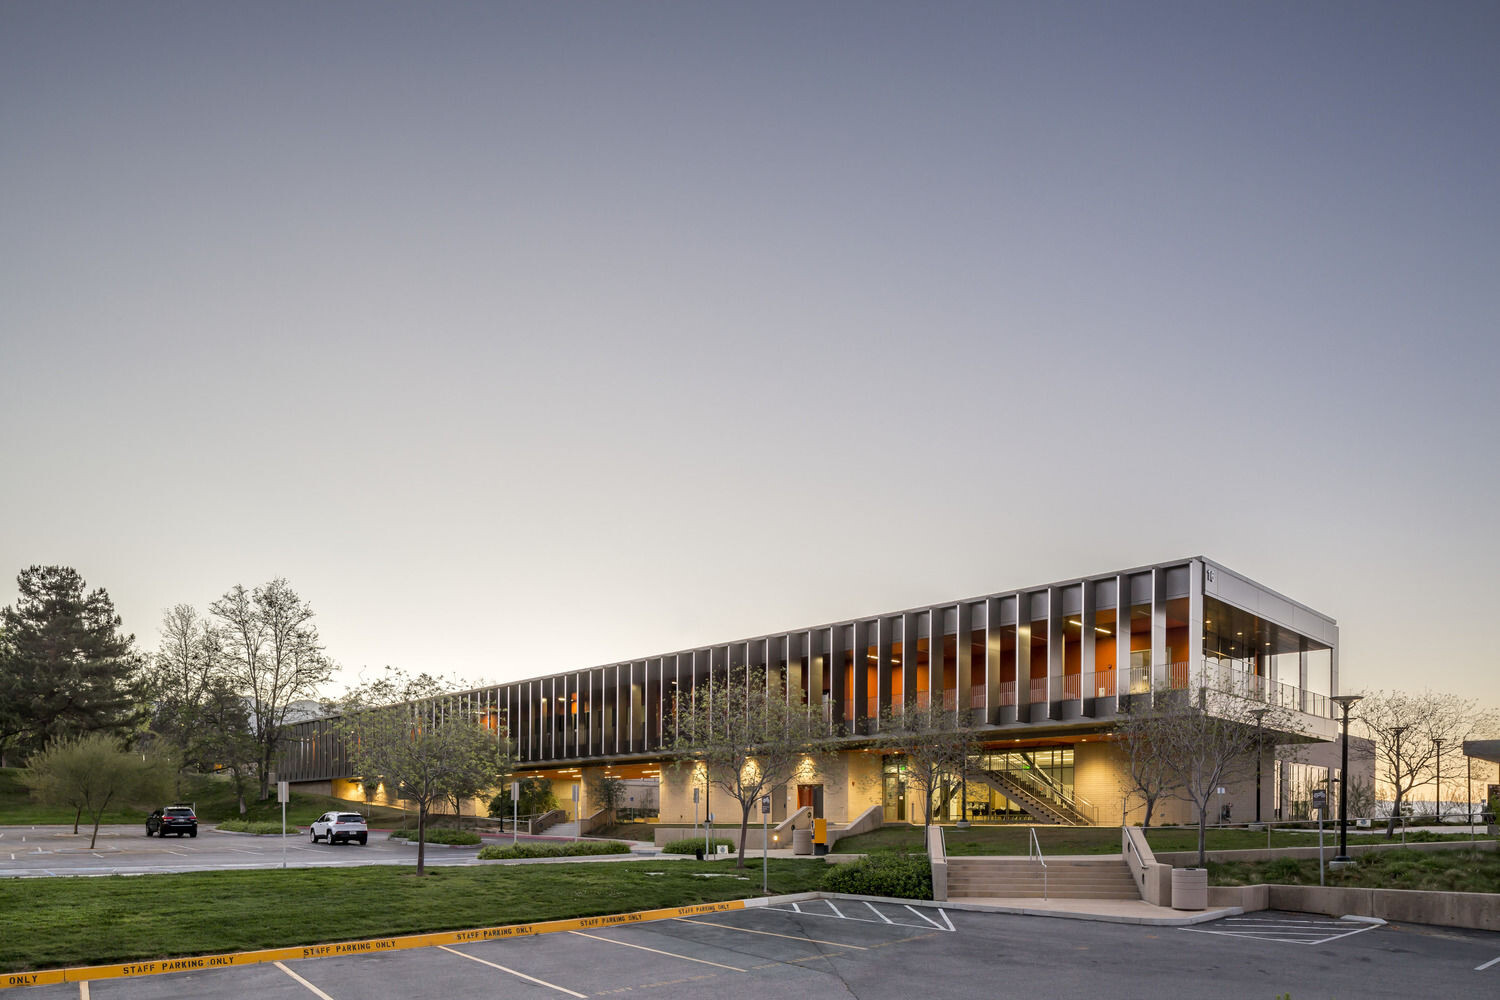 Crafton Hills College, Public Safety Building